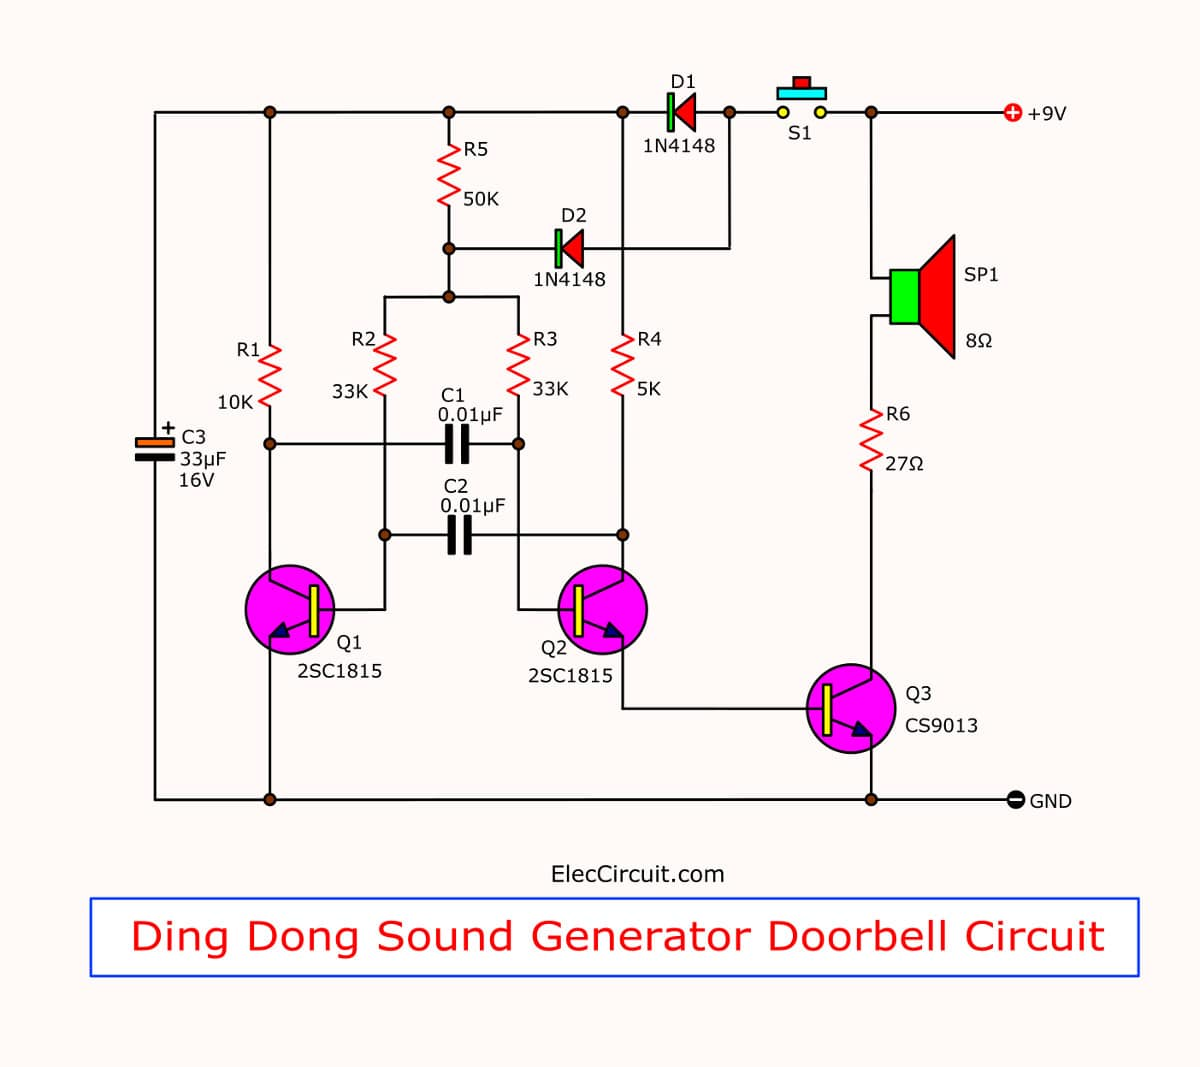 Ding Dong sound generator doorbell circuit using transistors